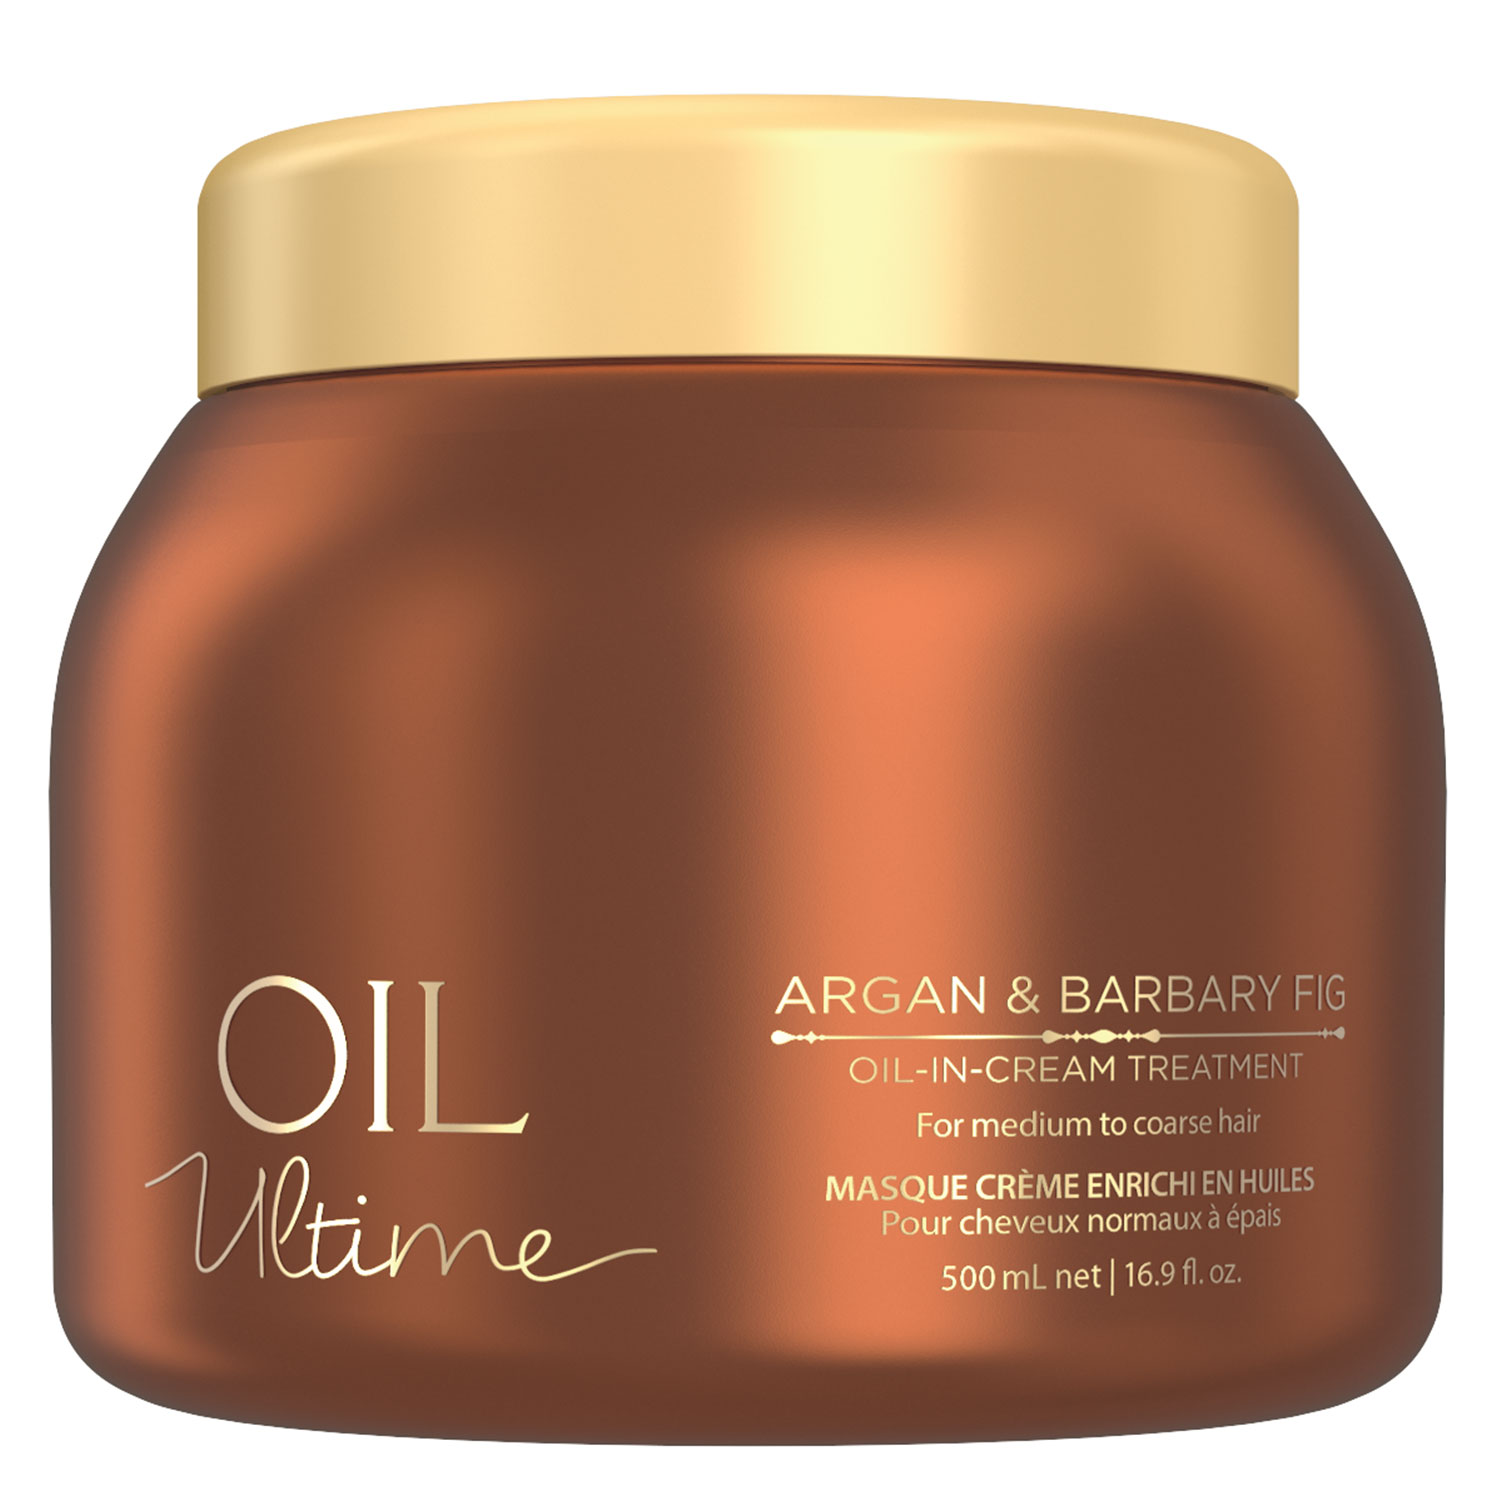 Oil Ultime - Oil-In Treatment